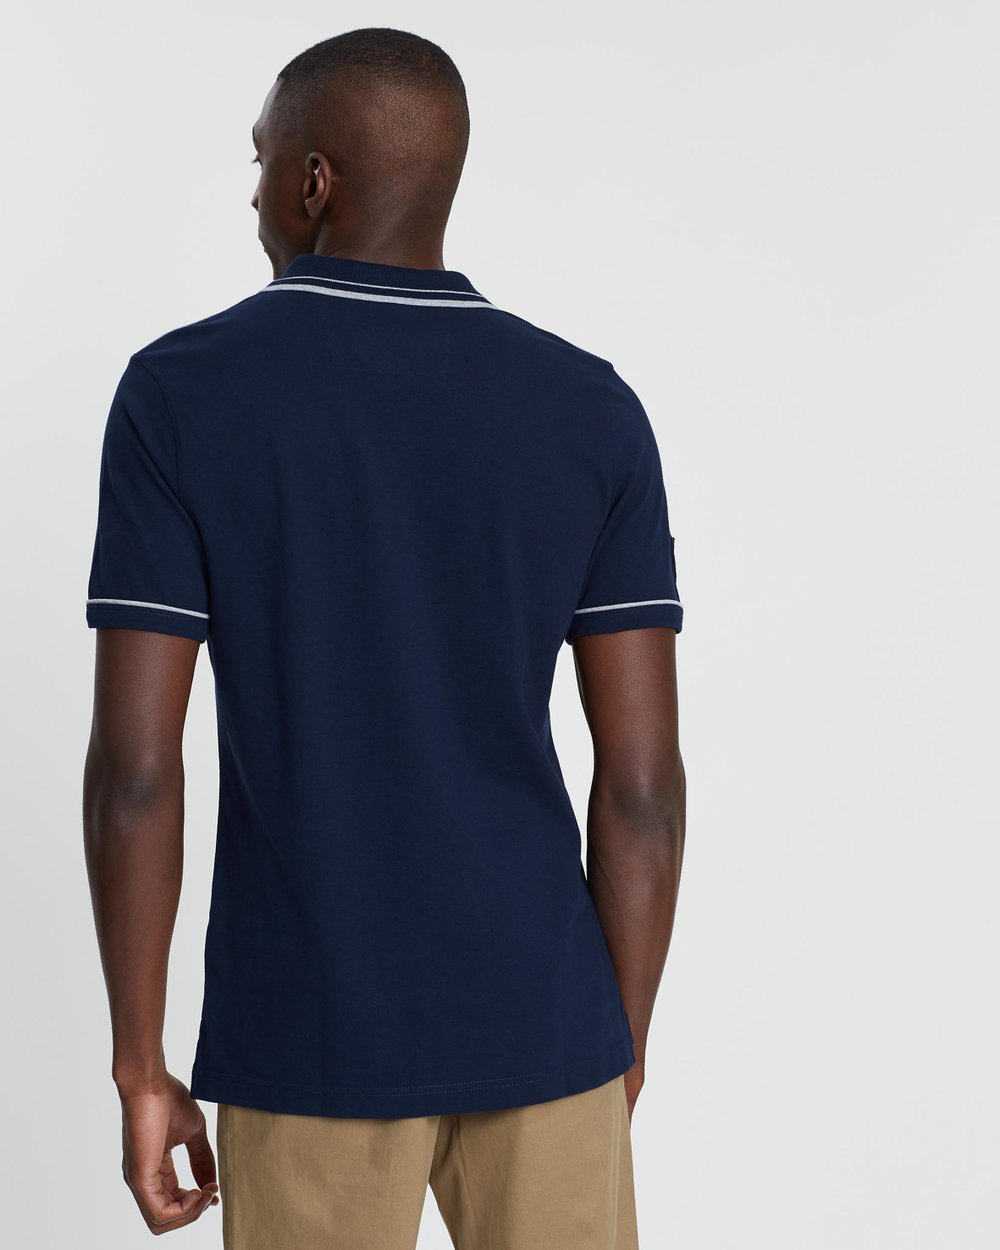 284c452d1cde Tipped Pique Polo by Banana Republic Online